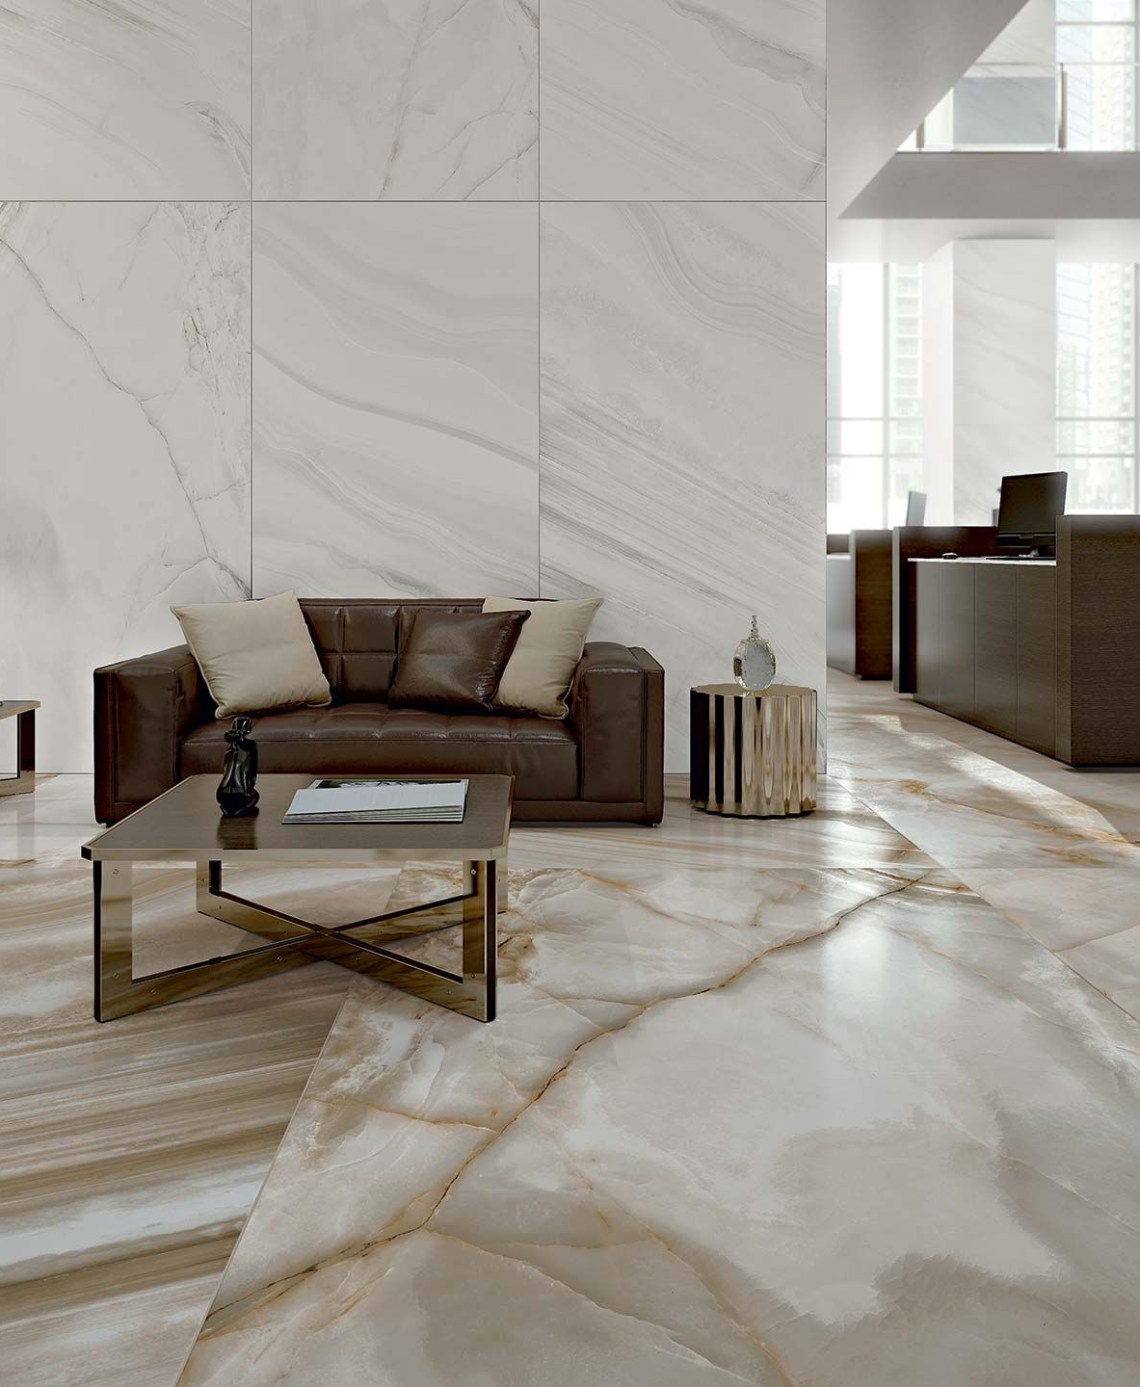 Alabaster Marble Flooring Of Shiny Ceramic Tiles